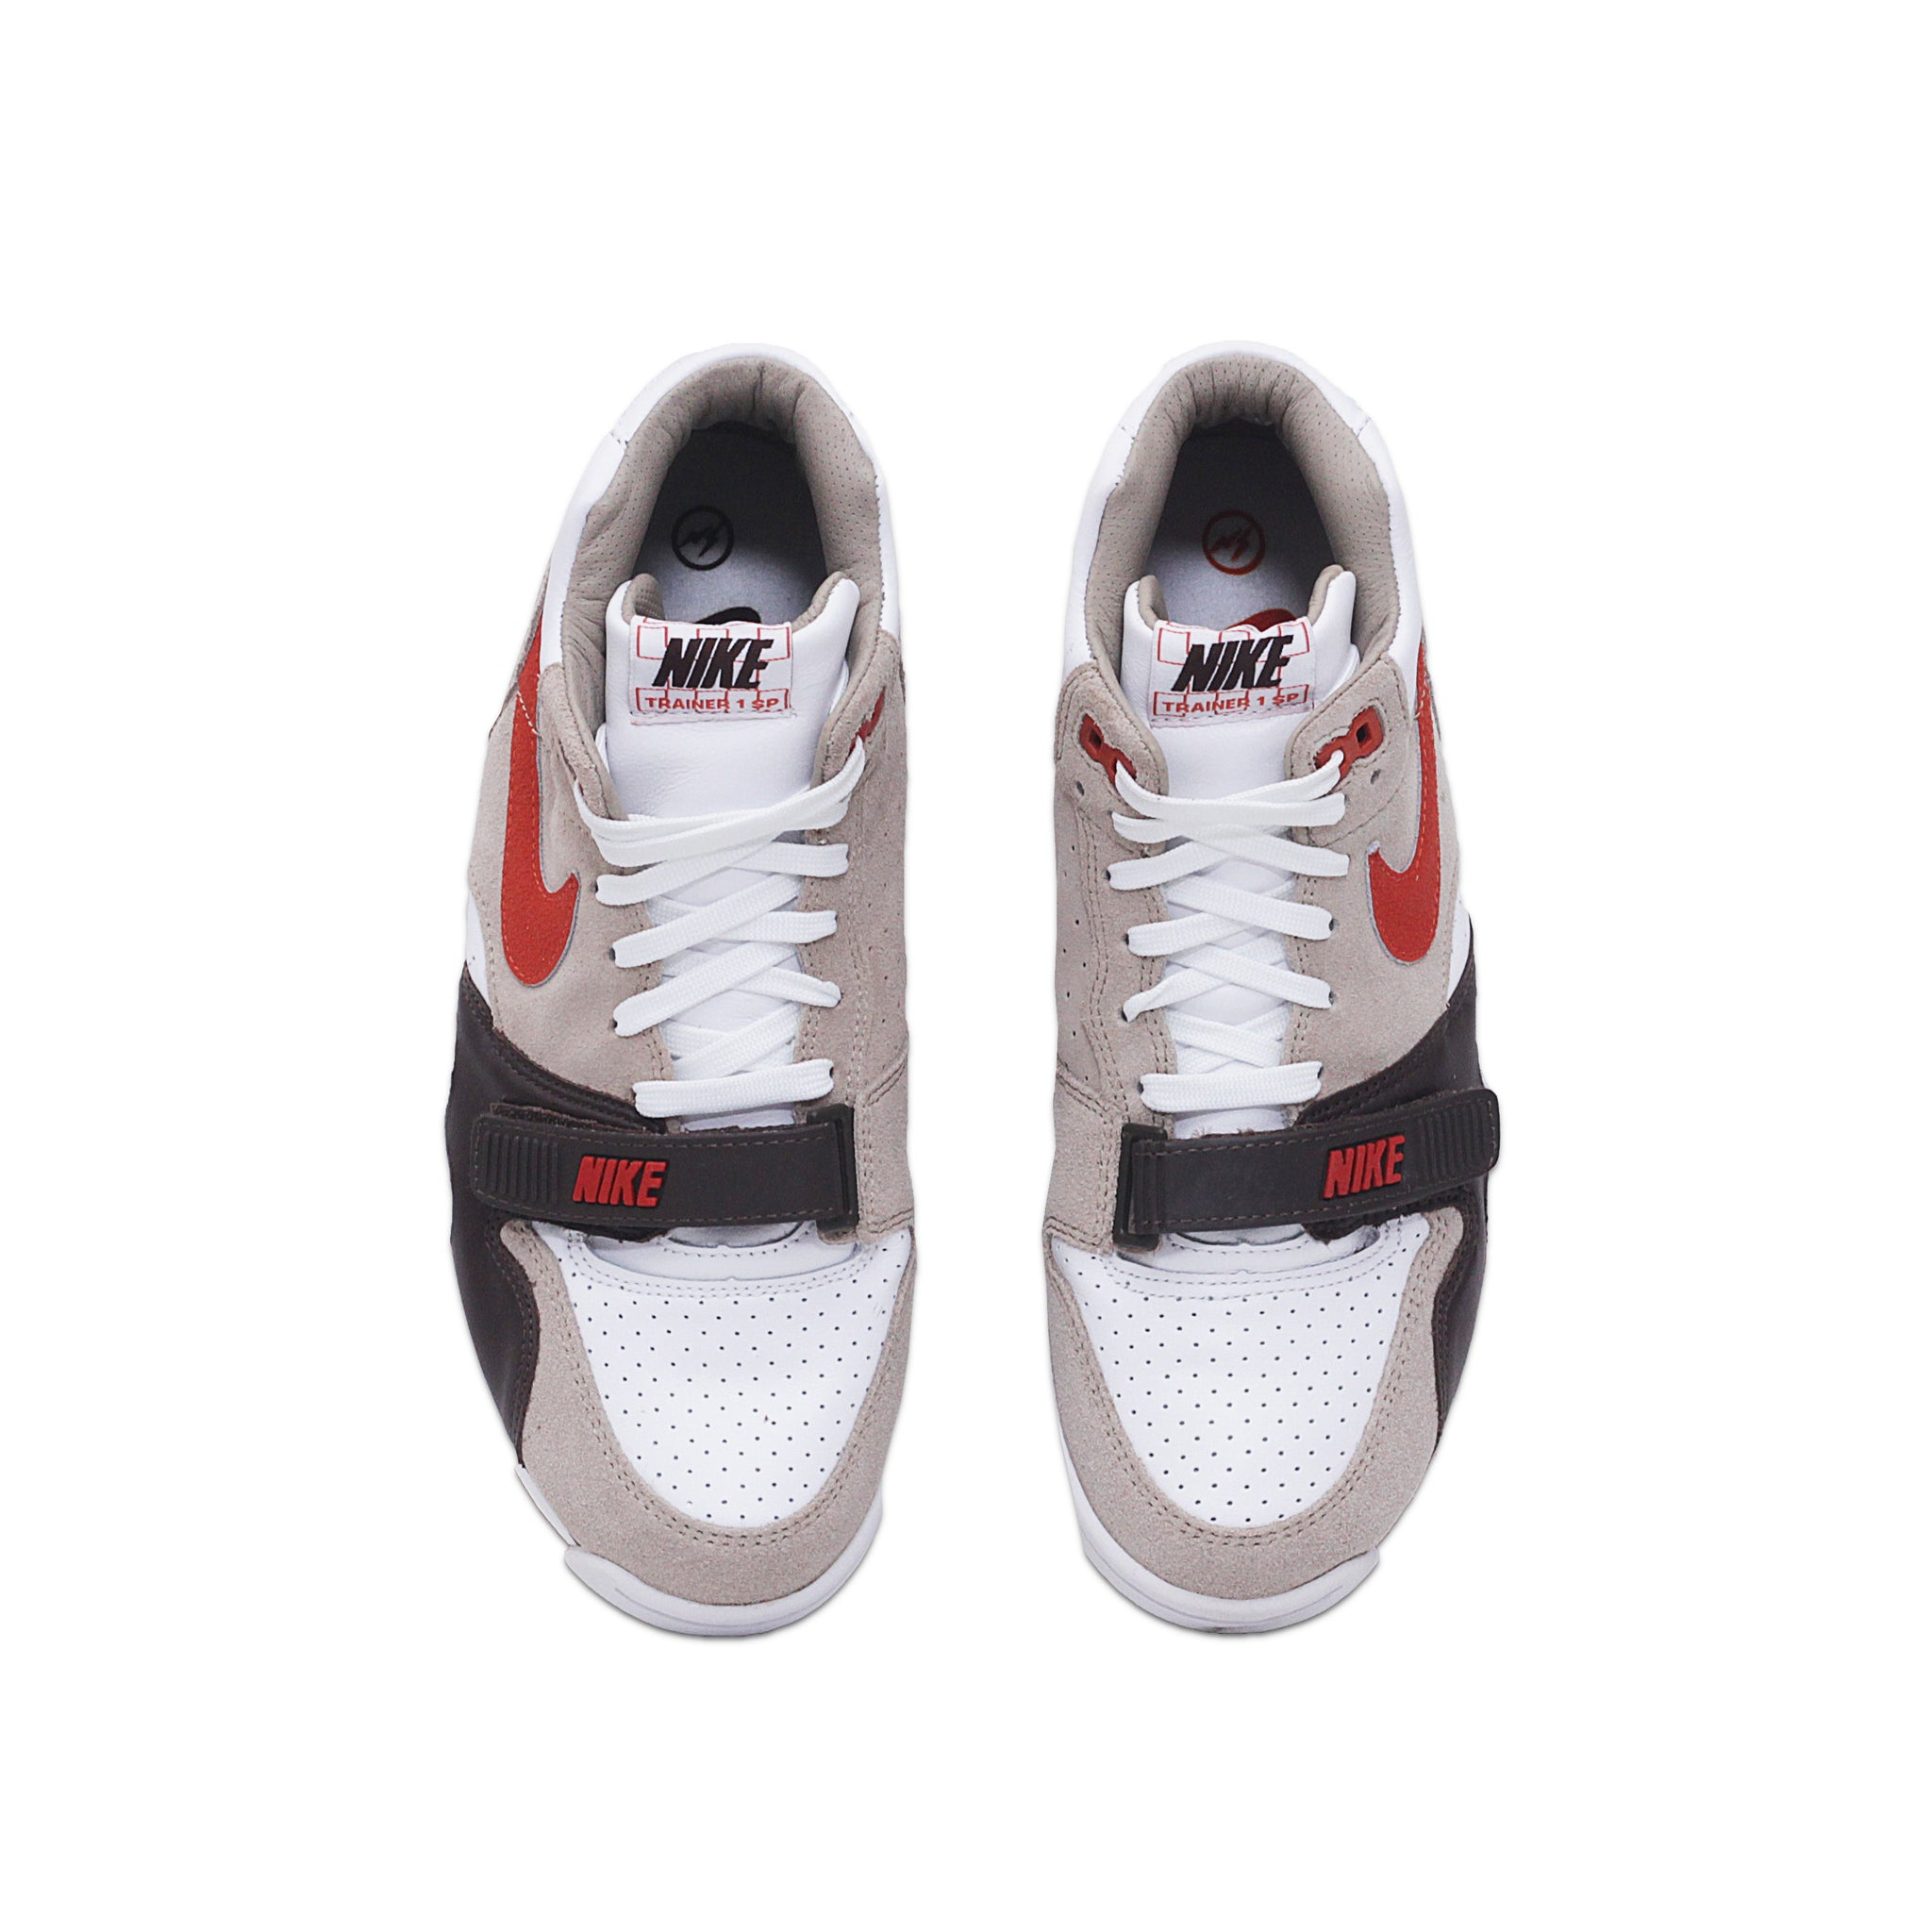 promo code 75e37 1b8ee ... Load image into Gallery viewer, Nike Air Trainer 1 Mid SP x Fragment